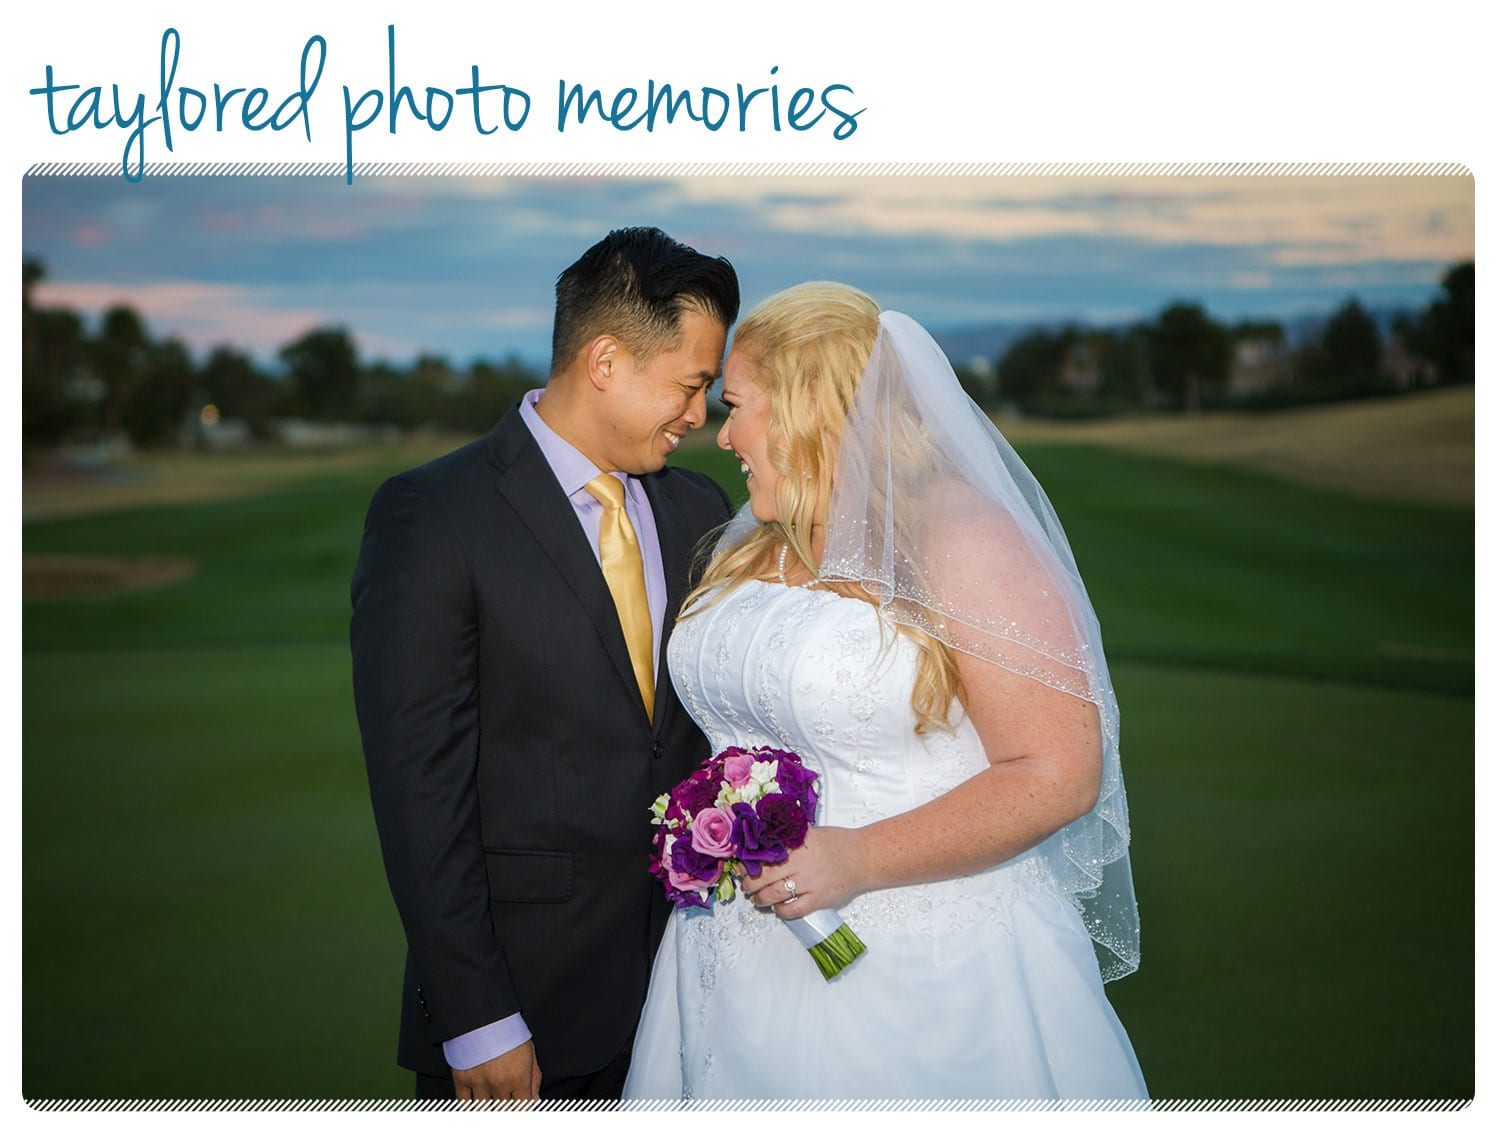 etsy wedding at Legacy Golf Club